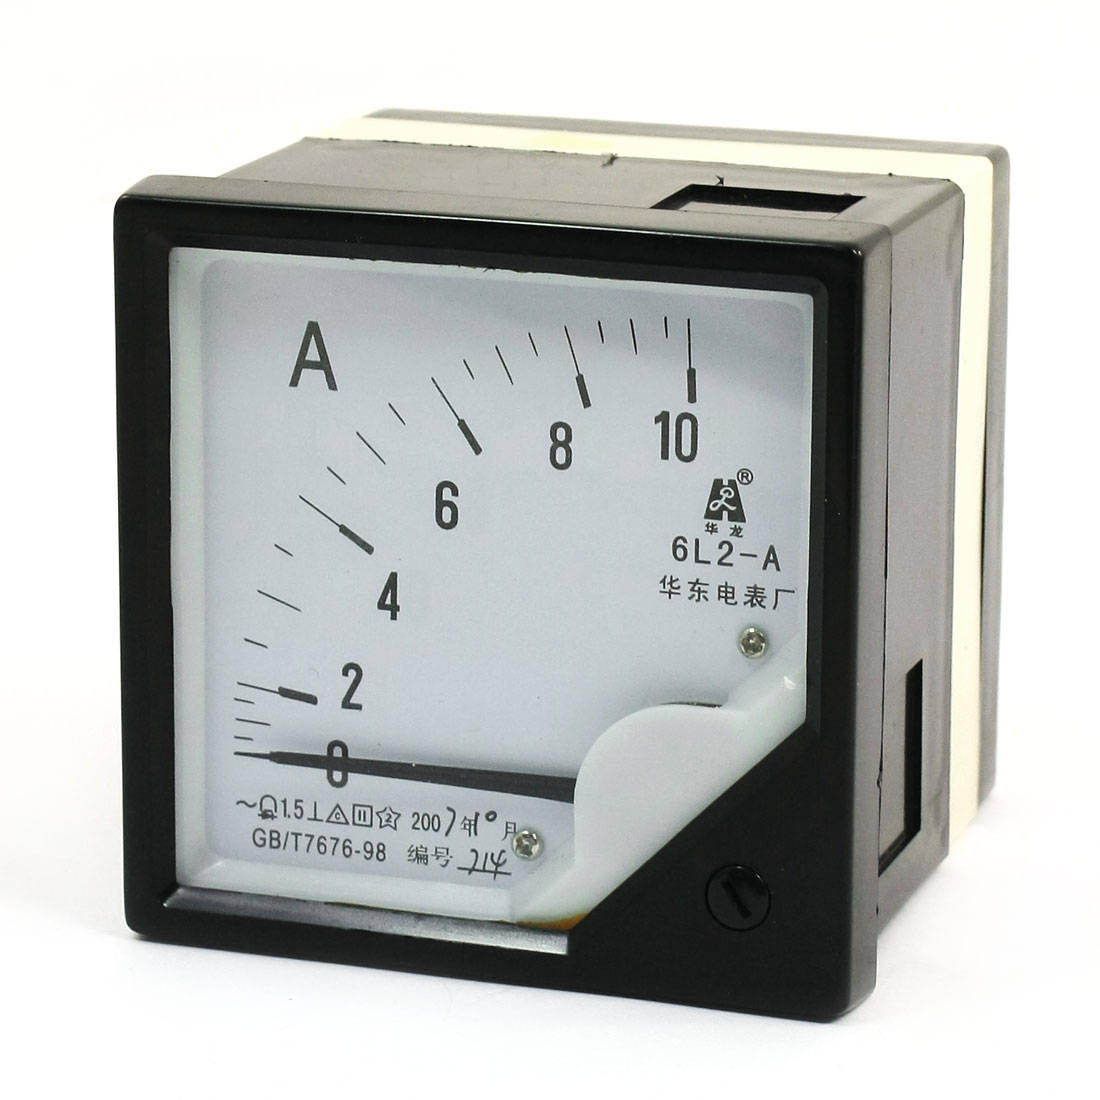 Square Panel AC 0-10A Analog Meter Ammeter Pointer 6L2-A